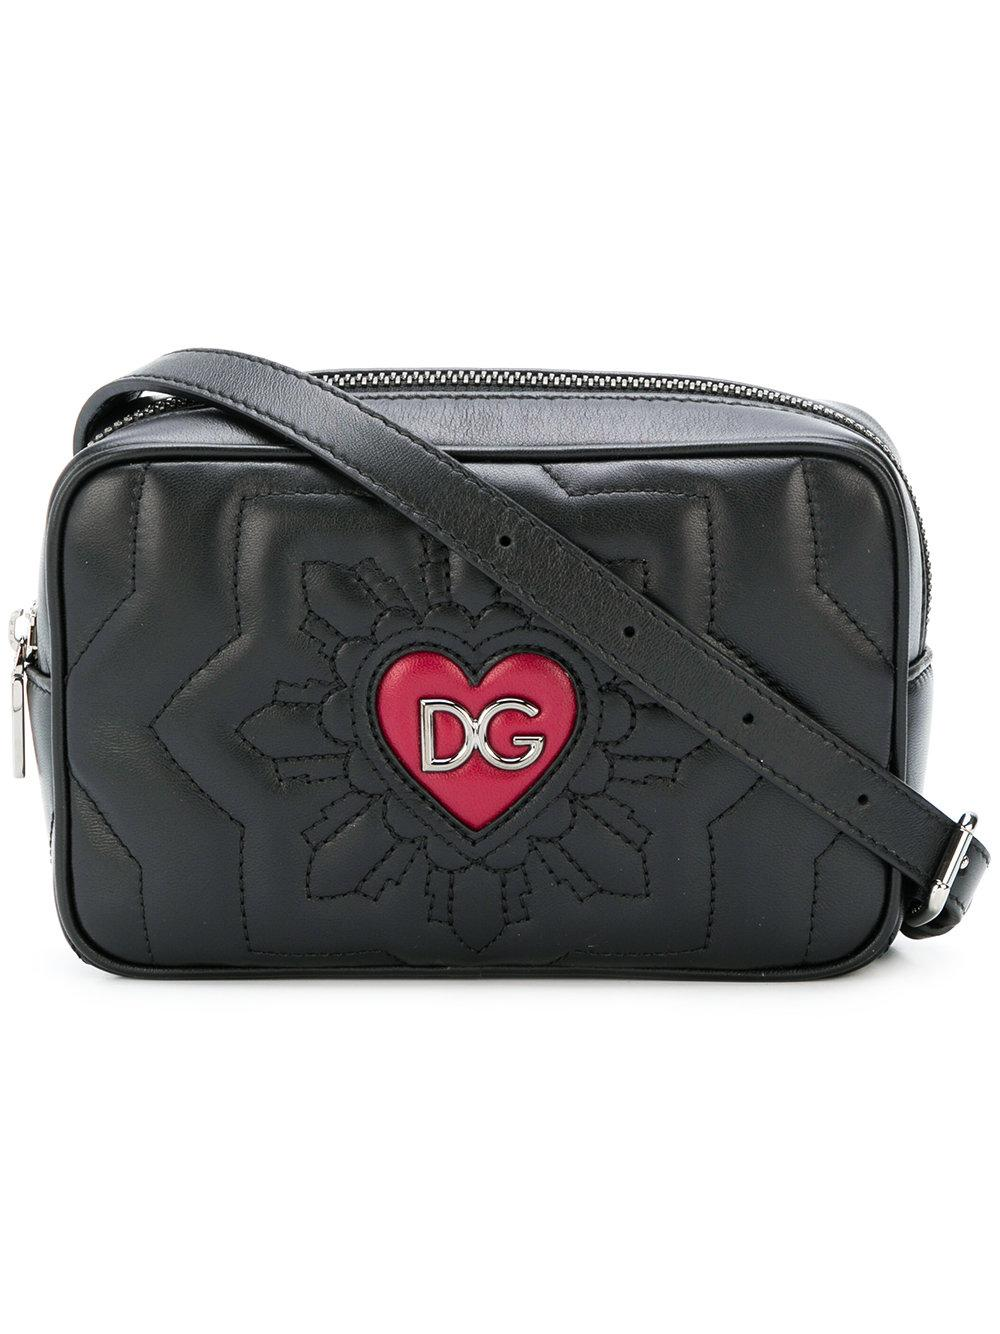 Dolce & Gabbana Glam Belt Bag